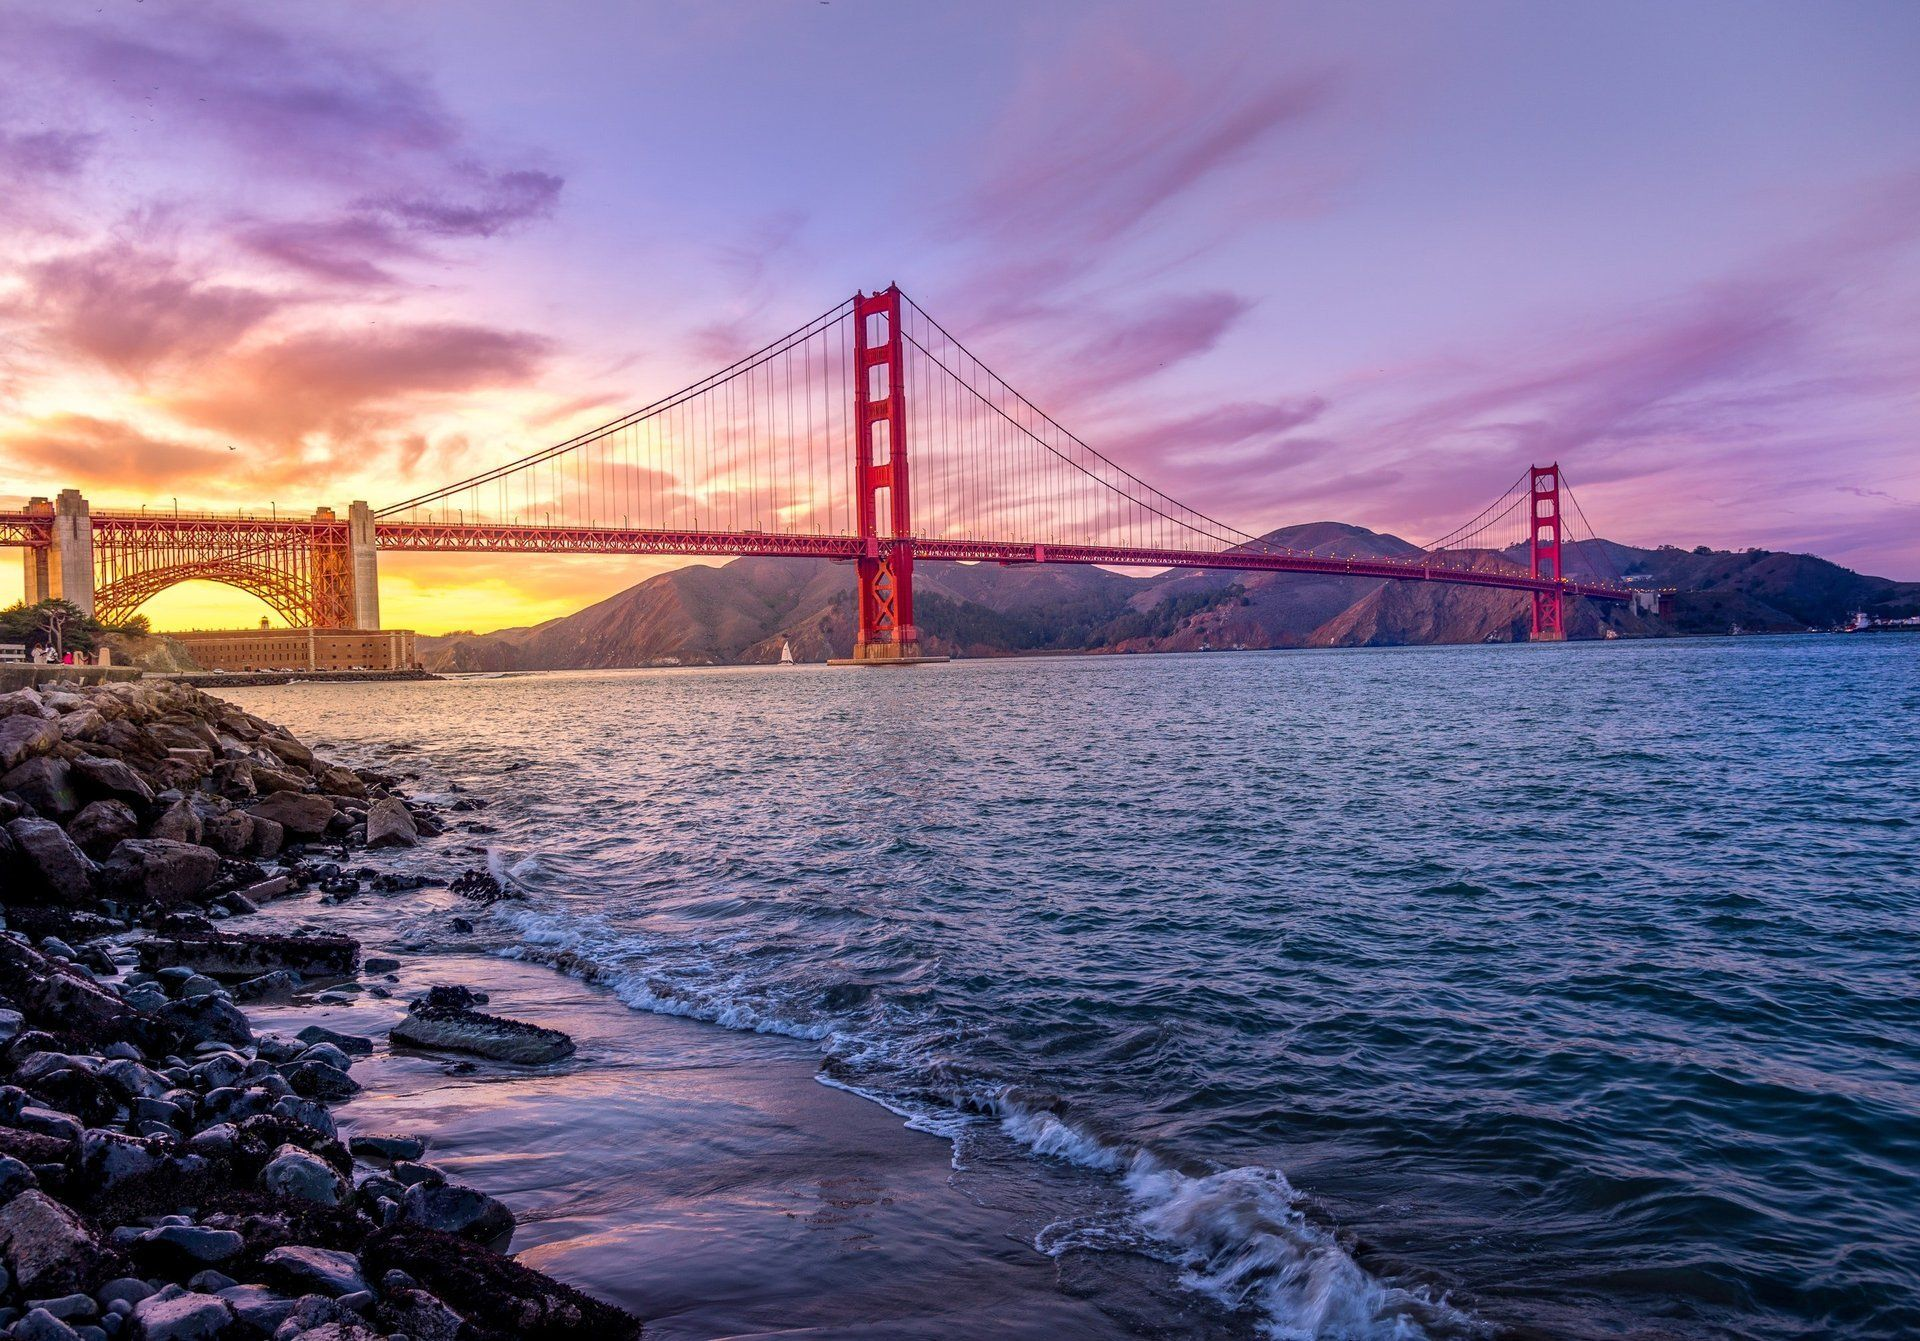 Road Trip To San Francisco: What To Do for Fun & Where to